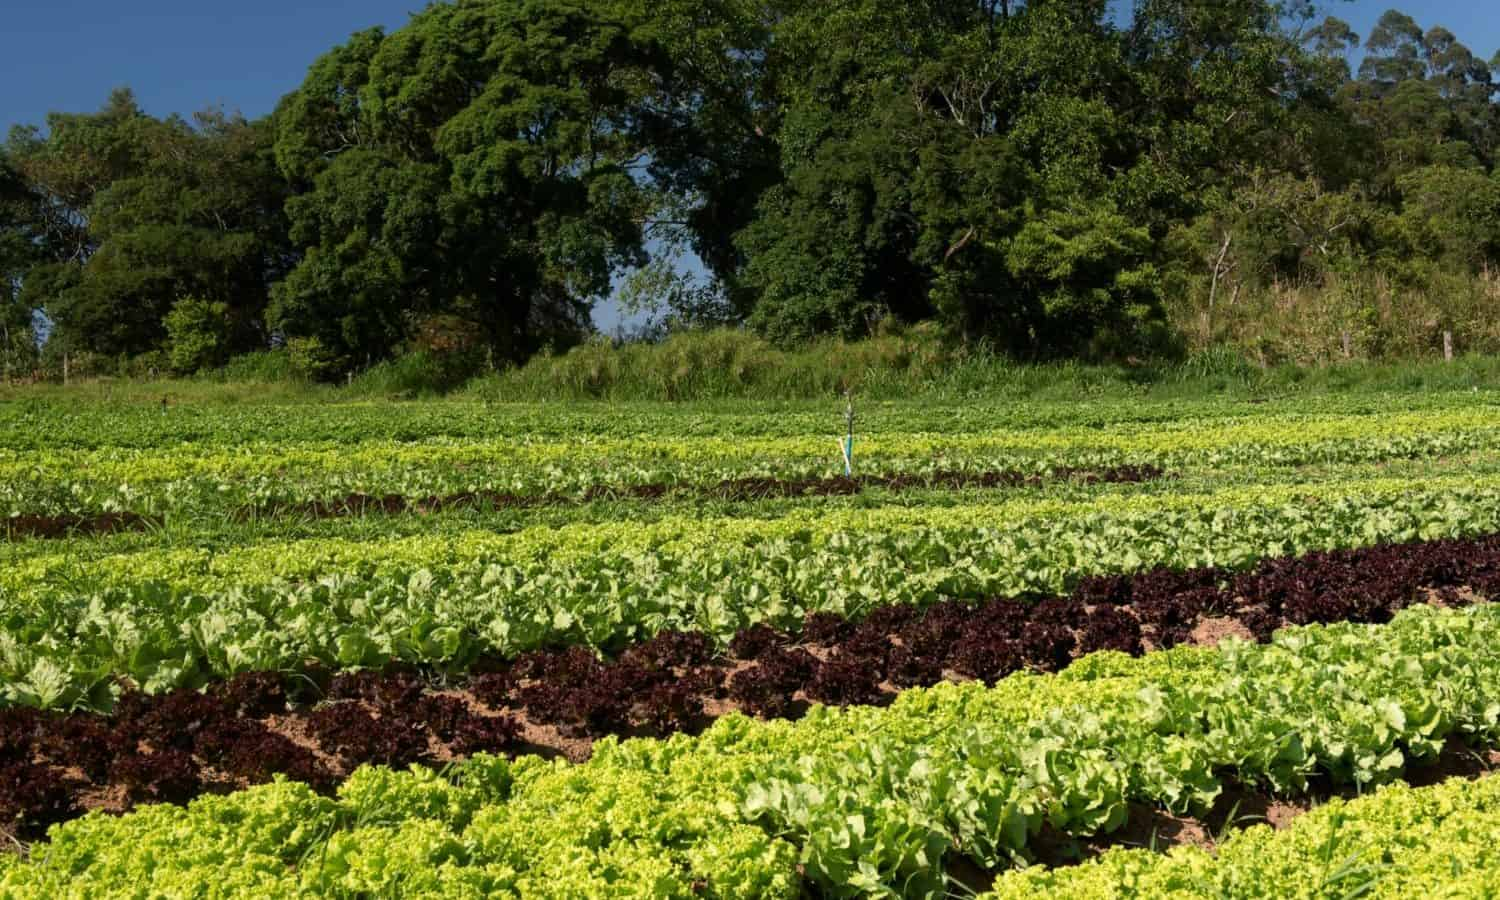 U.N. tracks rise in global hunger despite eradication efforts, but organizations are using agroecology and regenerative agriculture to combat malnutrition